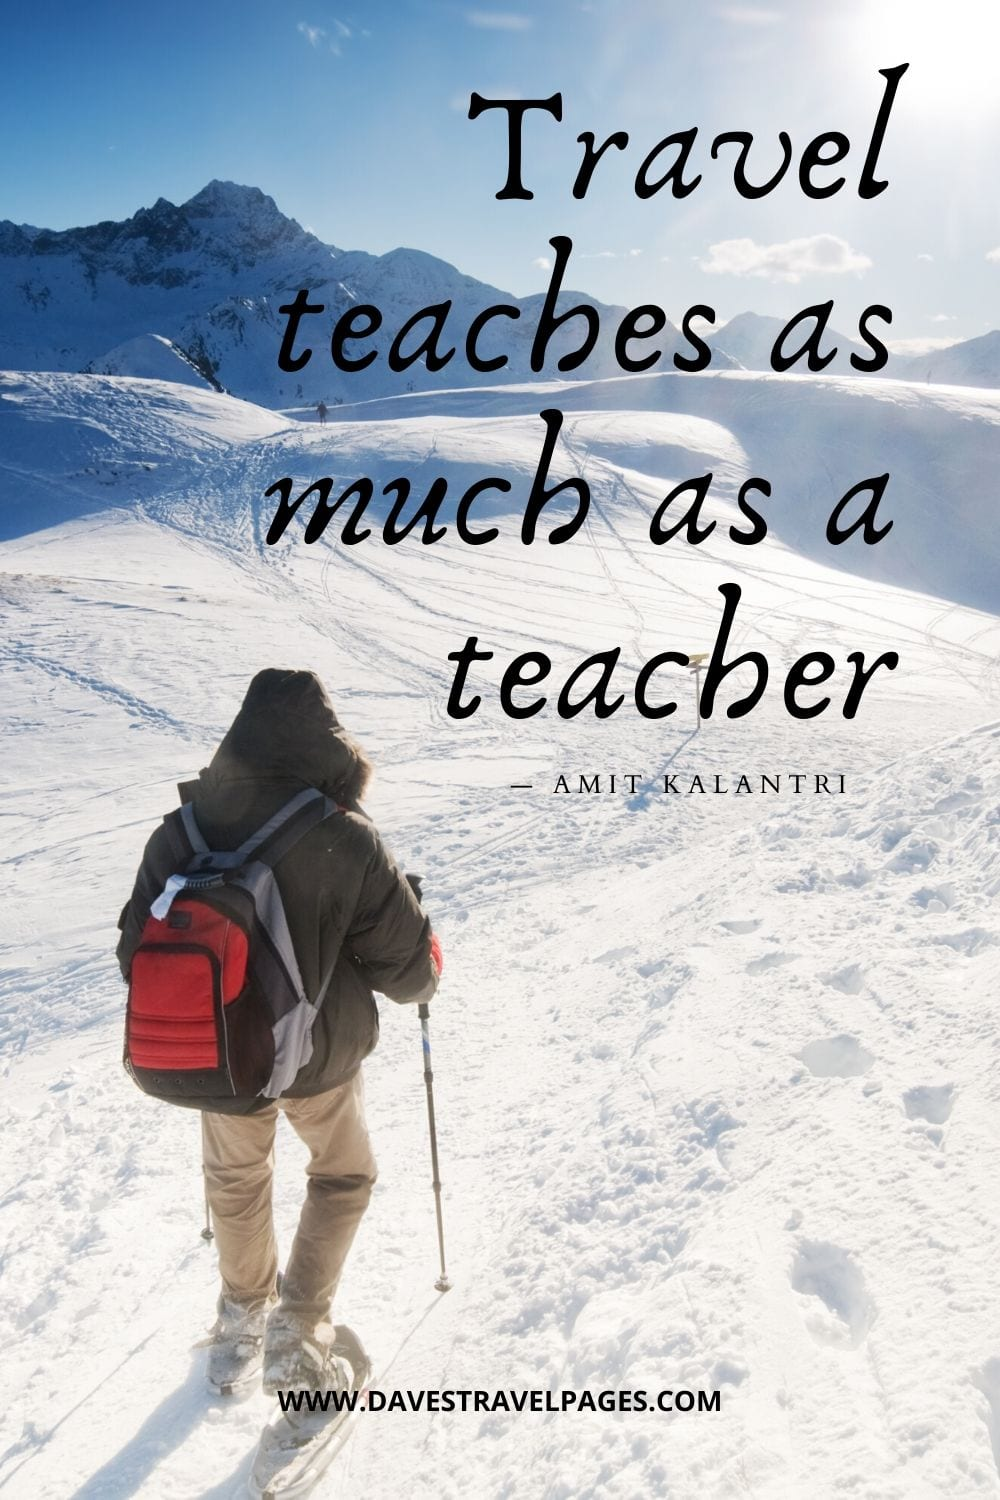 Quotes about traveling - Travel teaches as much as a teacher